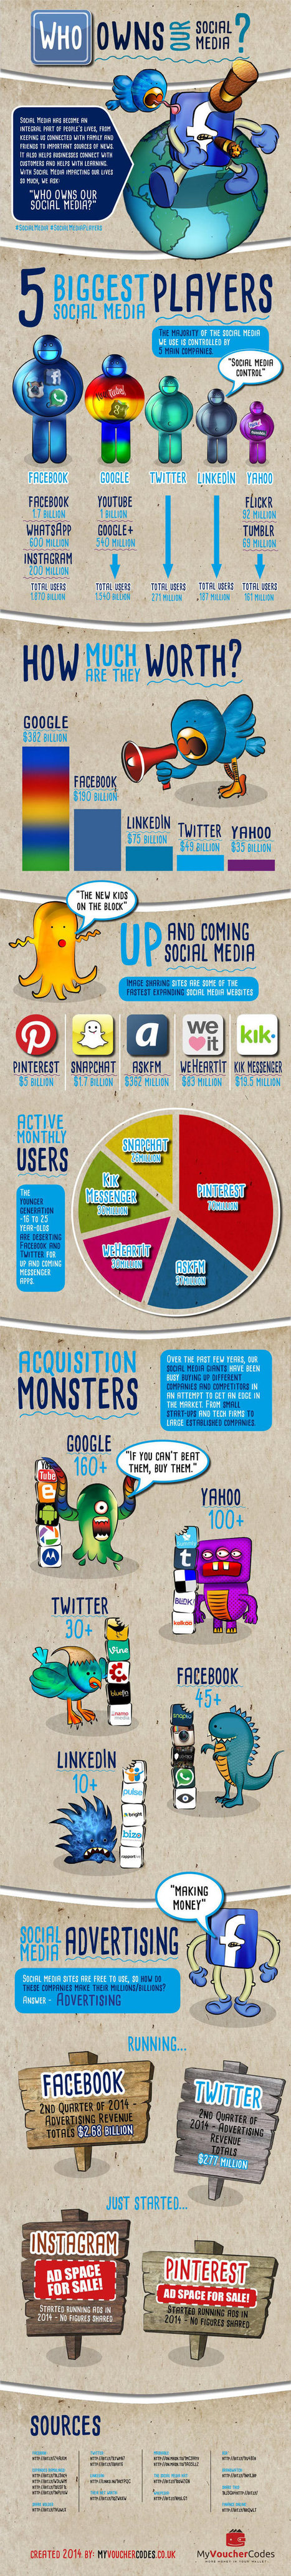 Who Owns your Social Media, an Infographic | The Daily Infograph by Tomas Jansma | Scoop.it